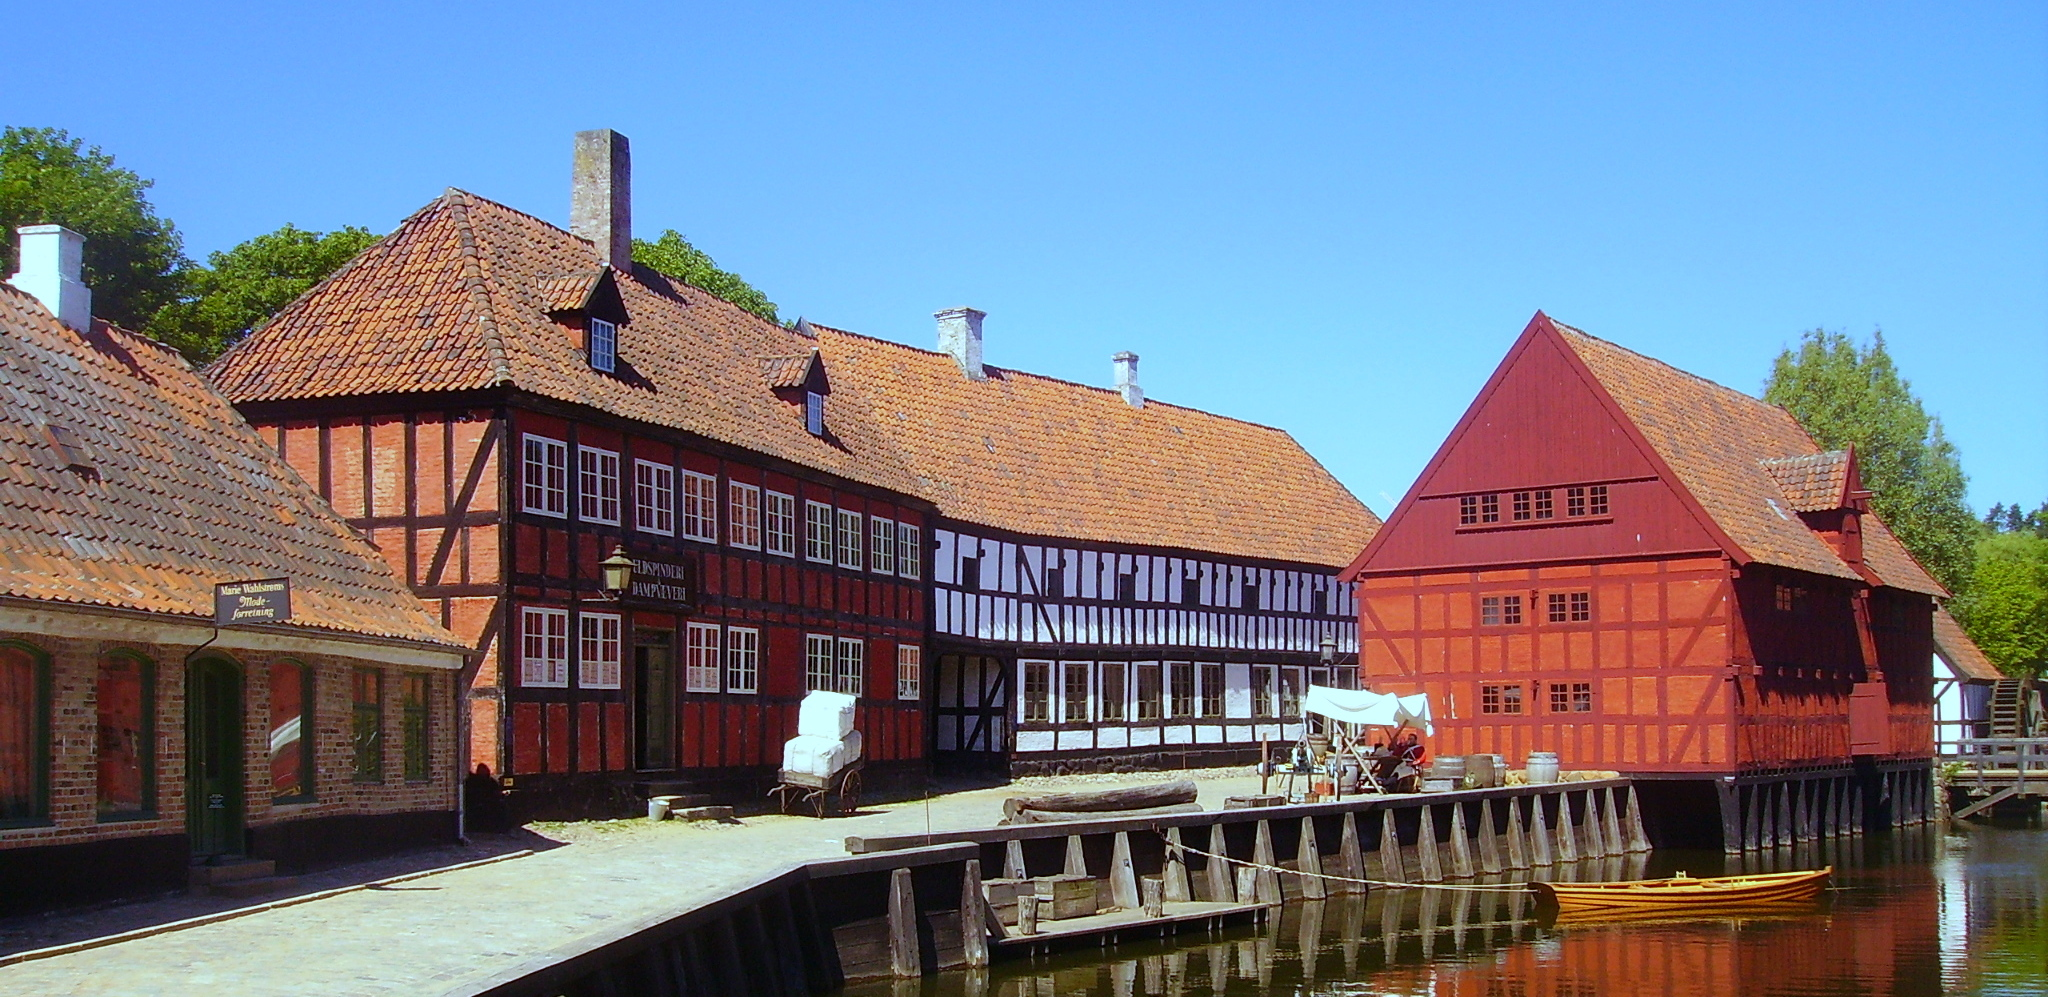 Den Gamle - Places to See when in Aarhus, Denmark